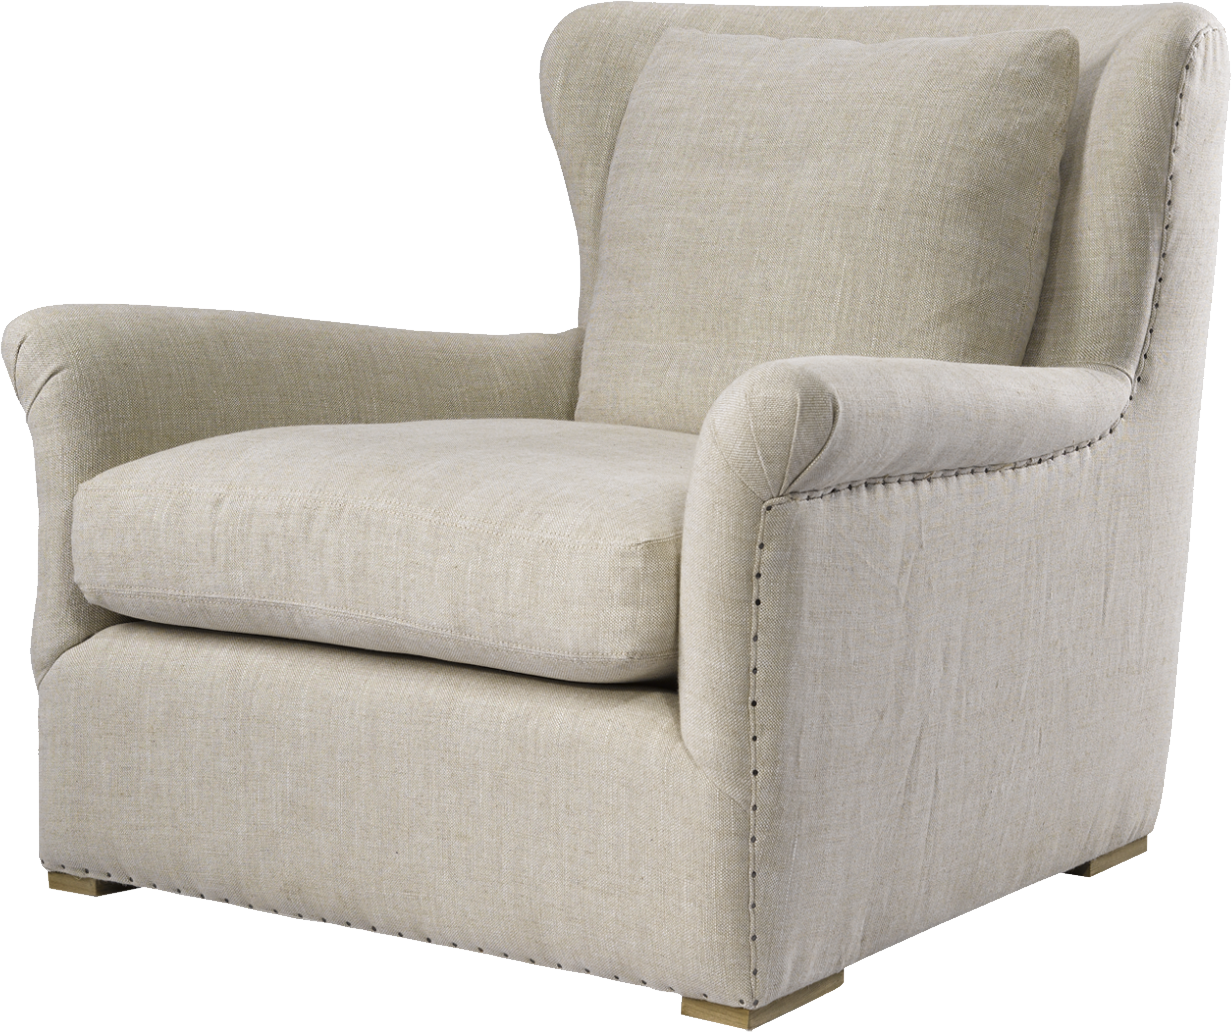 Download Armchair Png Image For Free